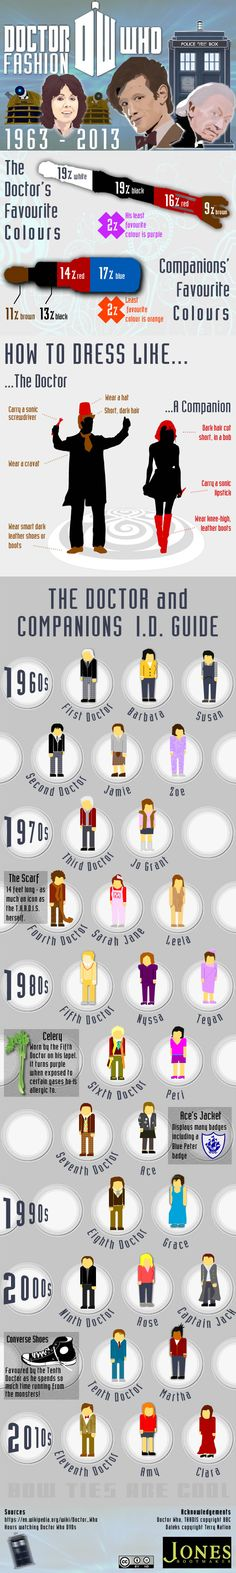 DOCTOR WHO 50 YEARS OF TIMELESS FASHION INFOGRAPHIC by Martin Glick